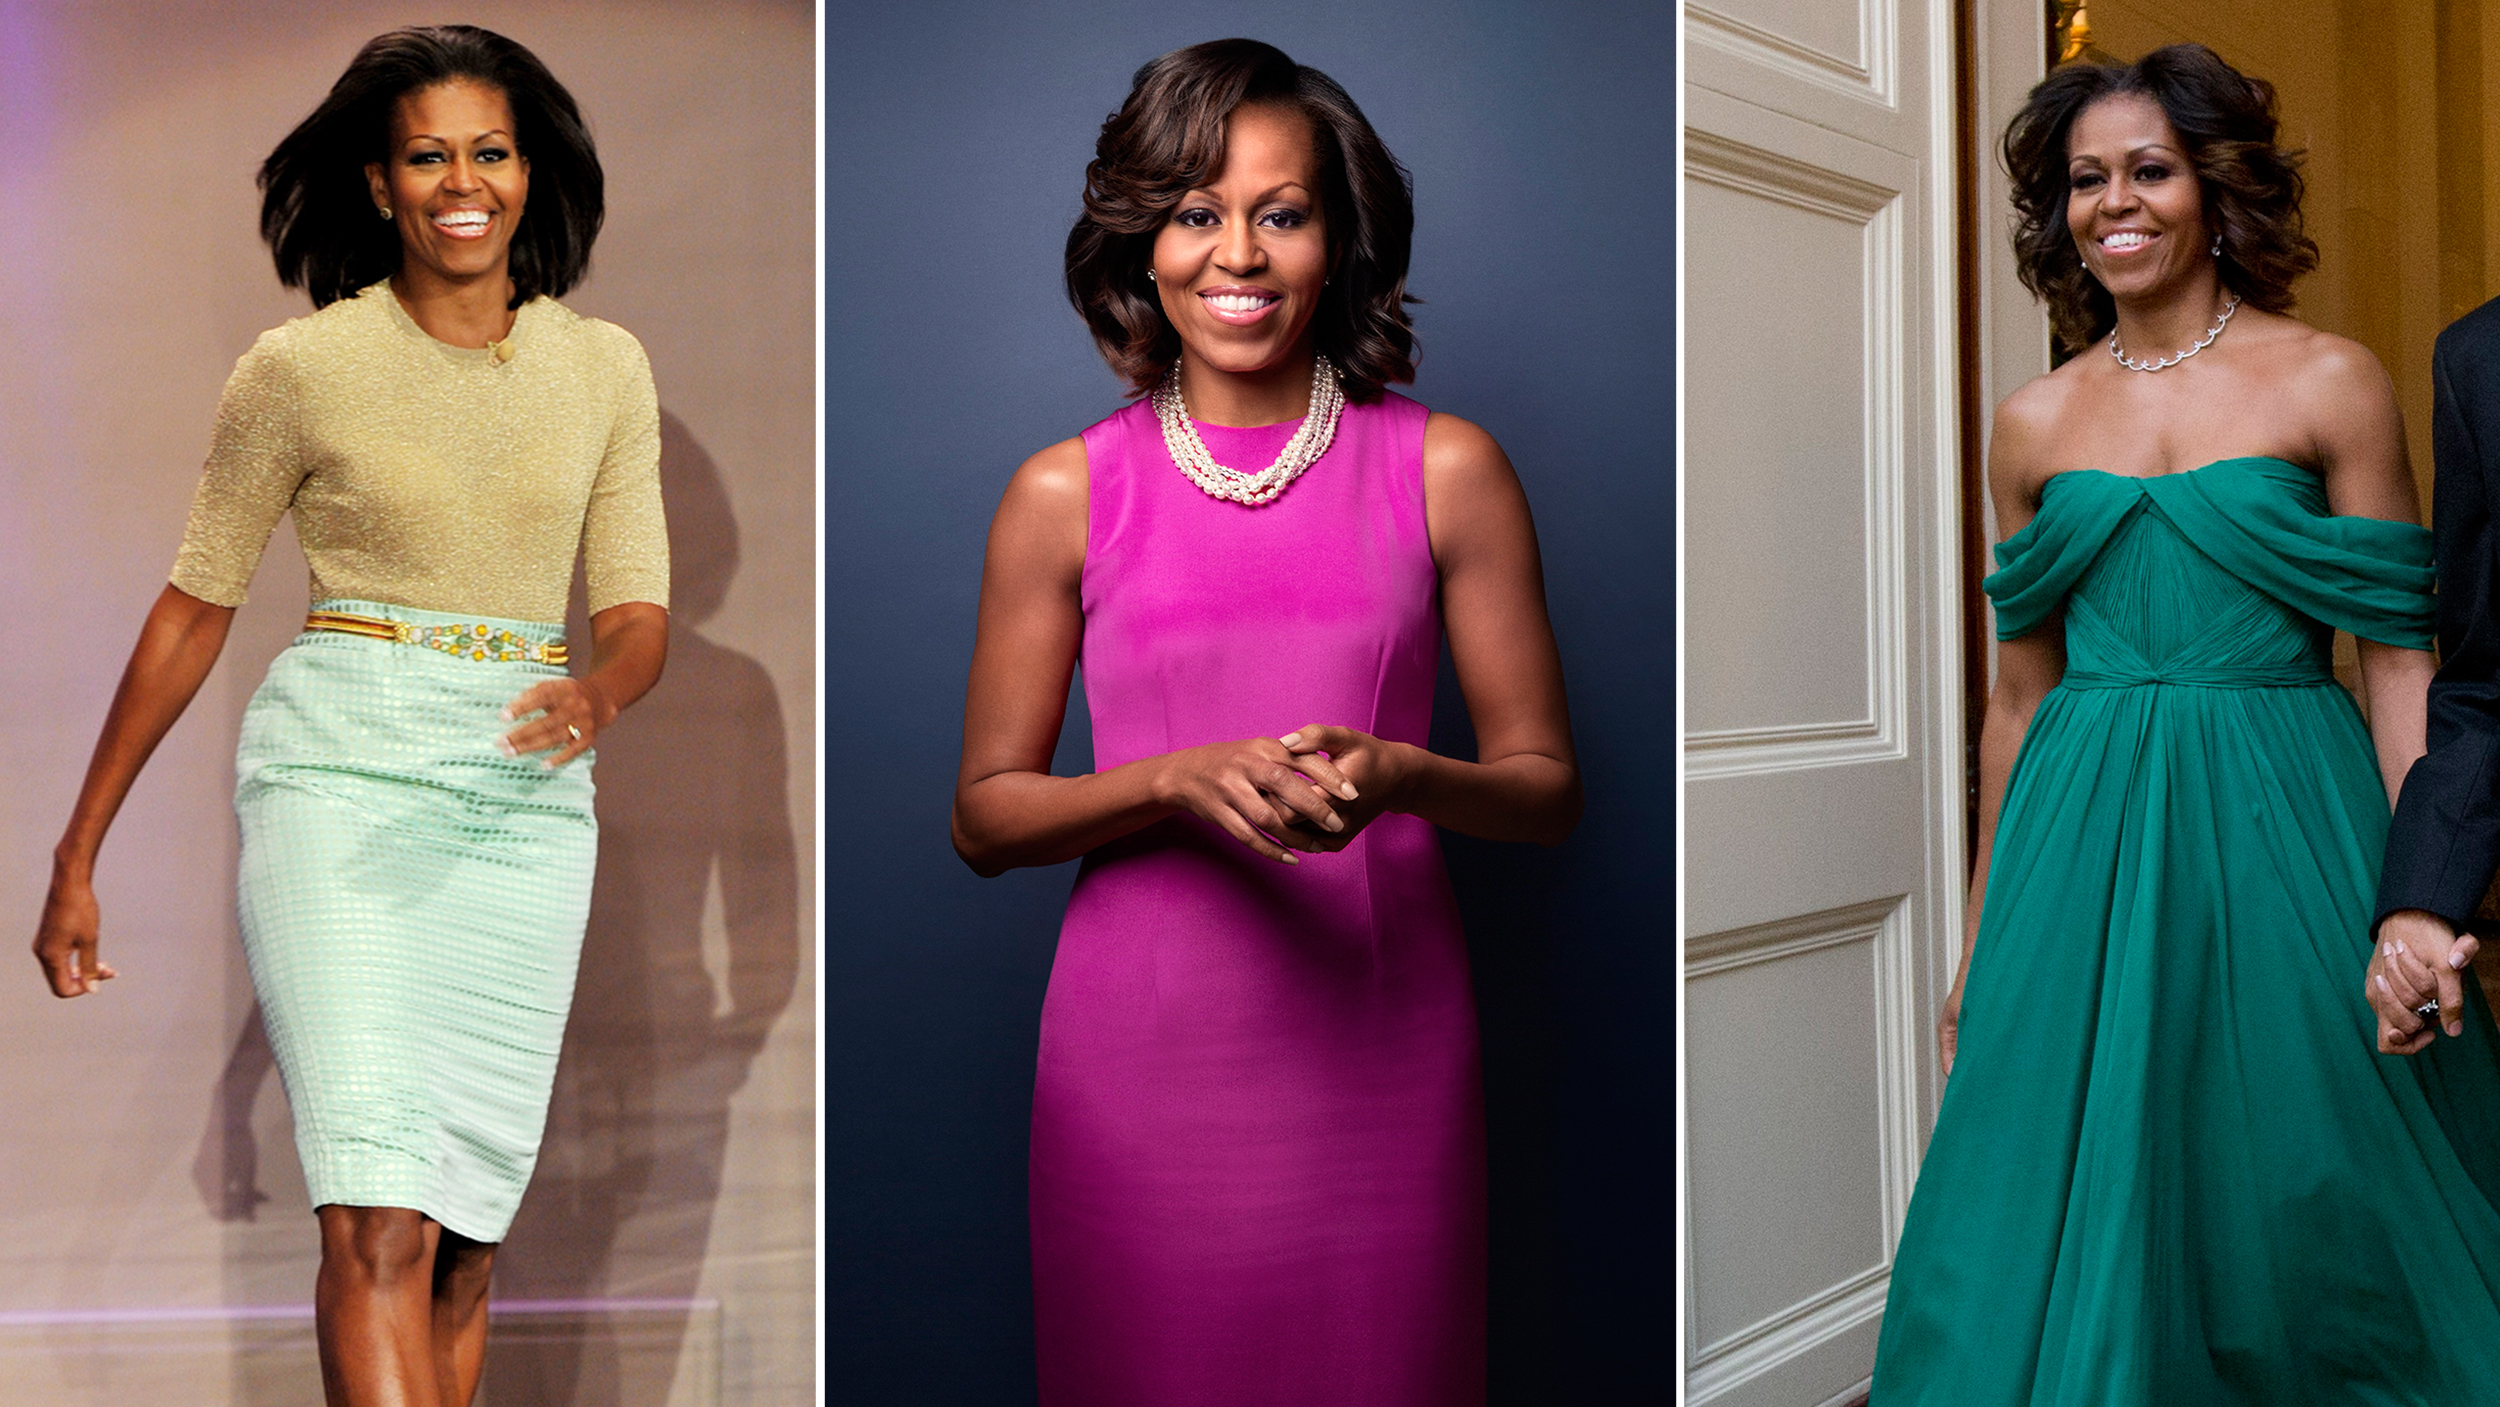 39 The Mrs Obama Effect 39 First Lady 39 S Boldest Looks Redefine Style